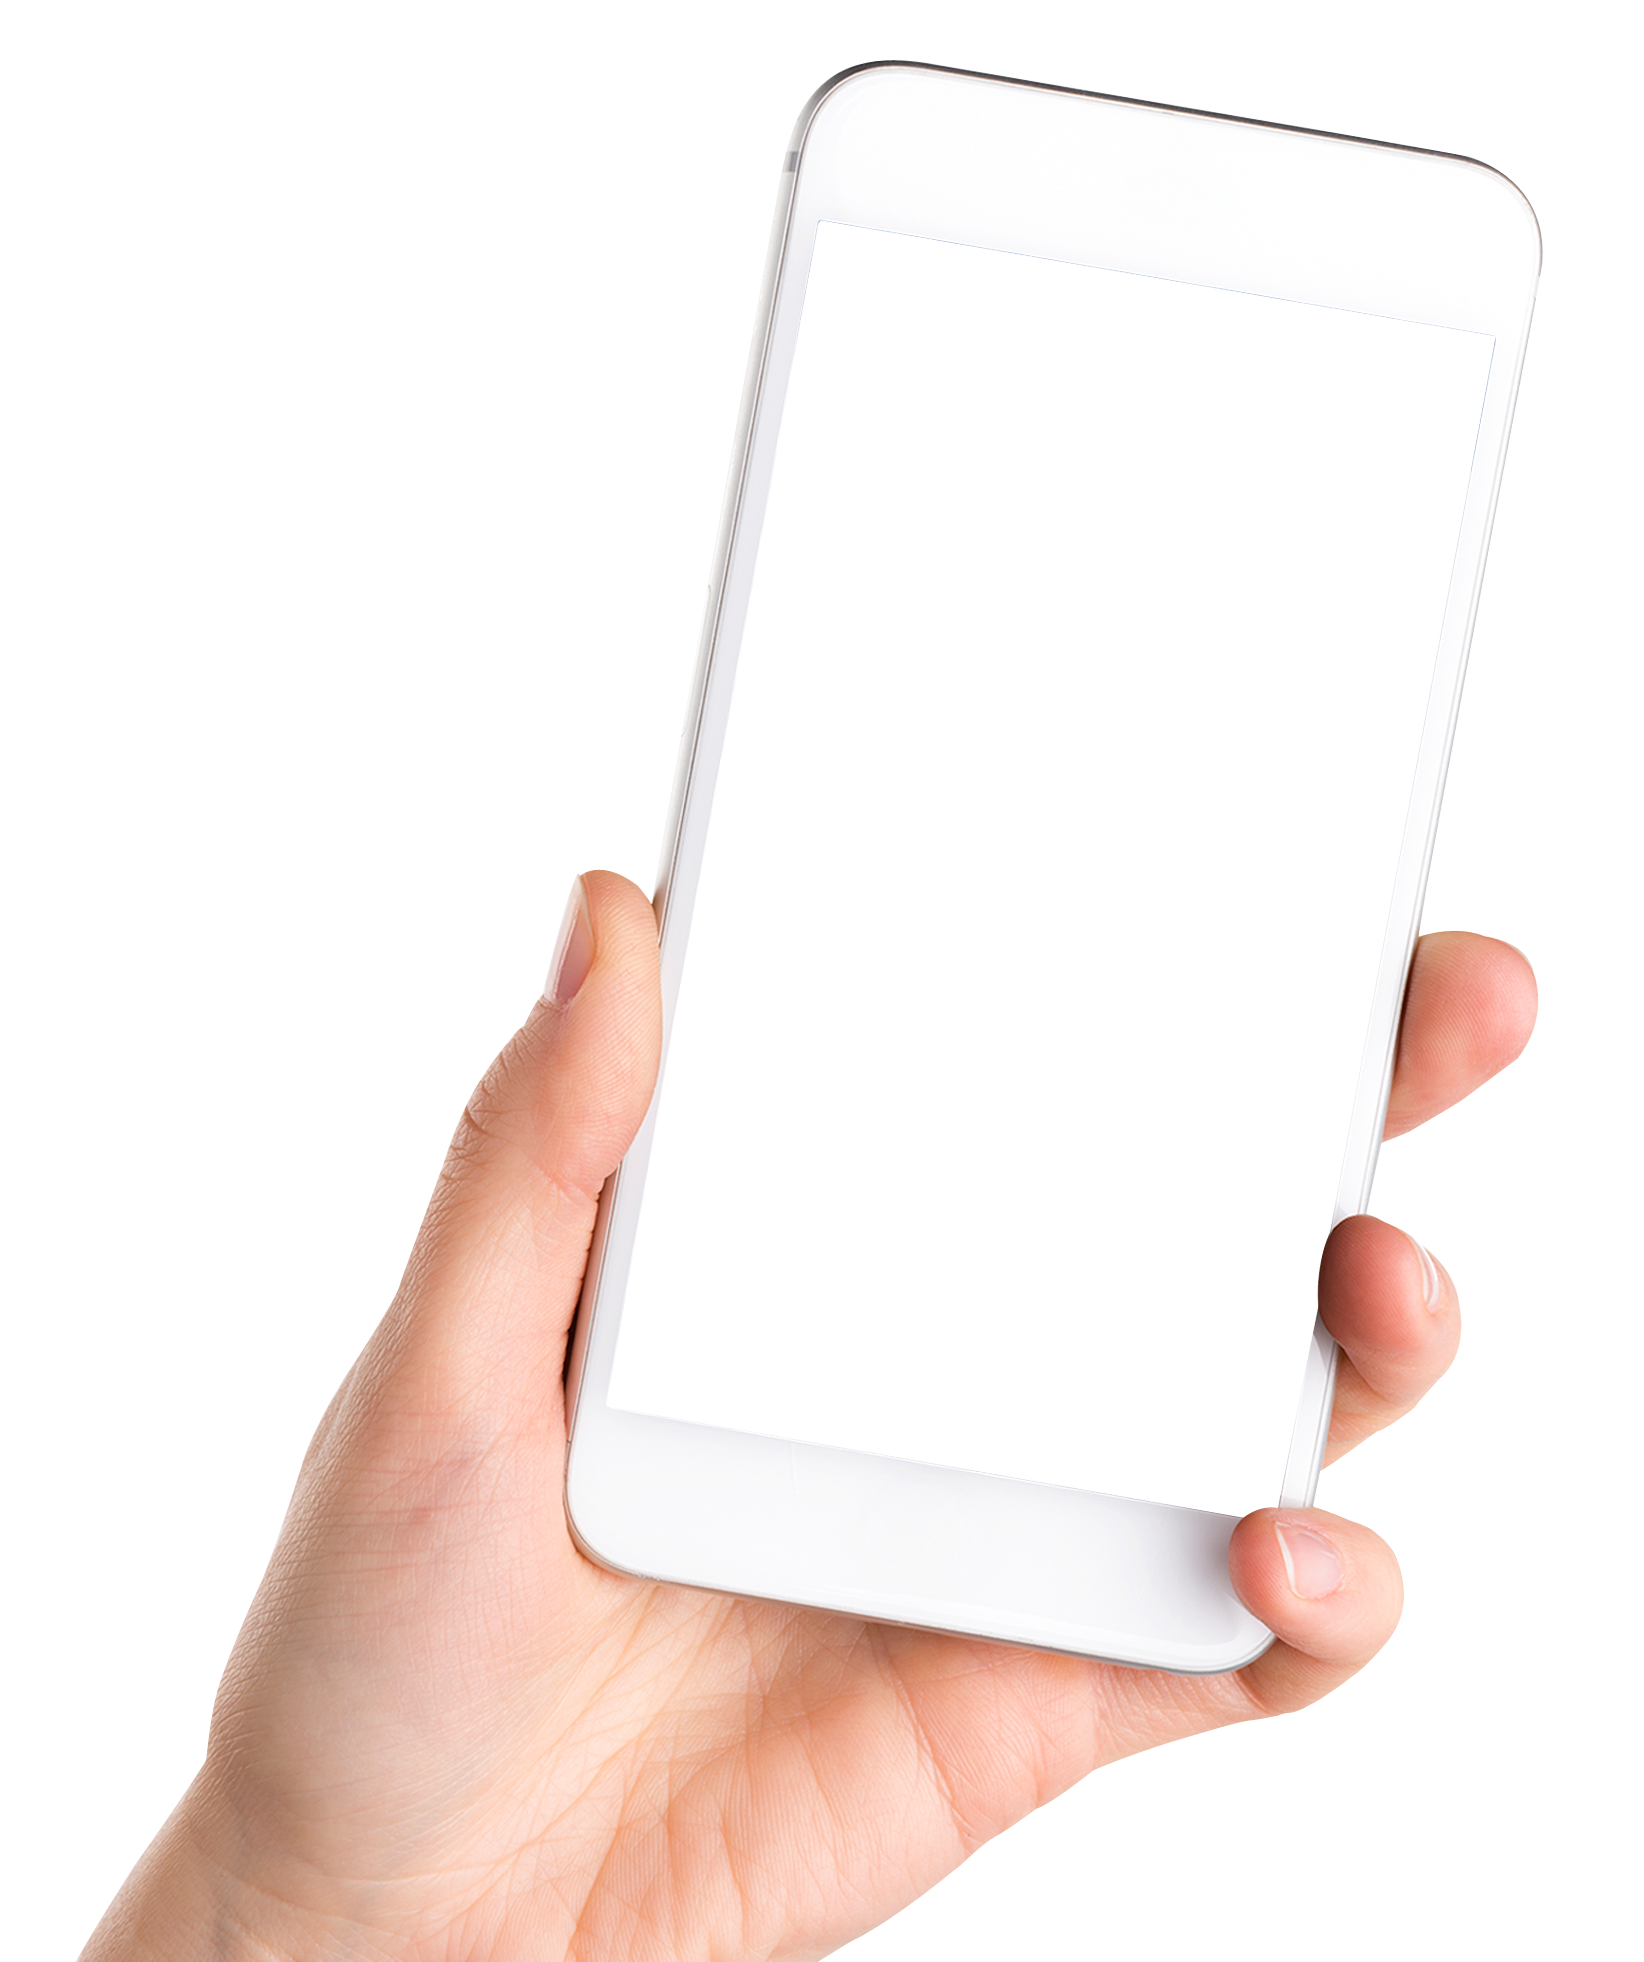 Hand clipart smartphone. Holding mobile png image